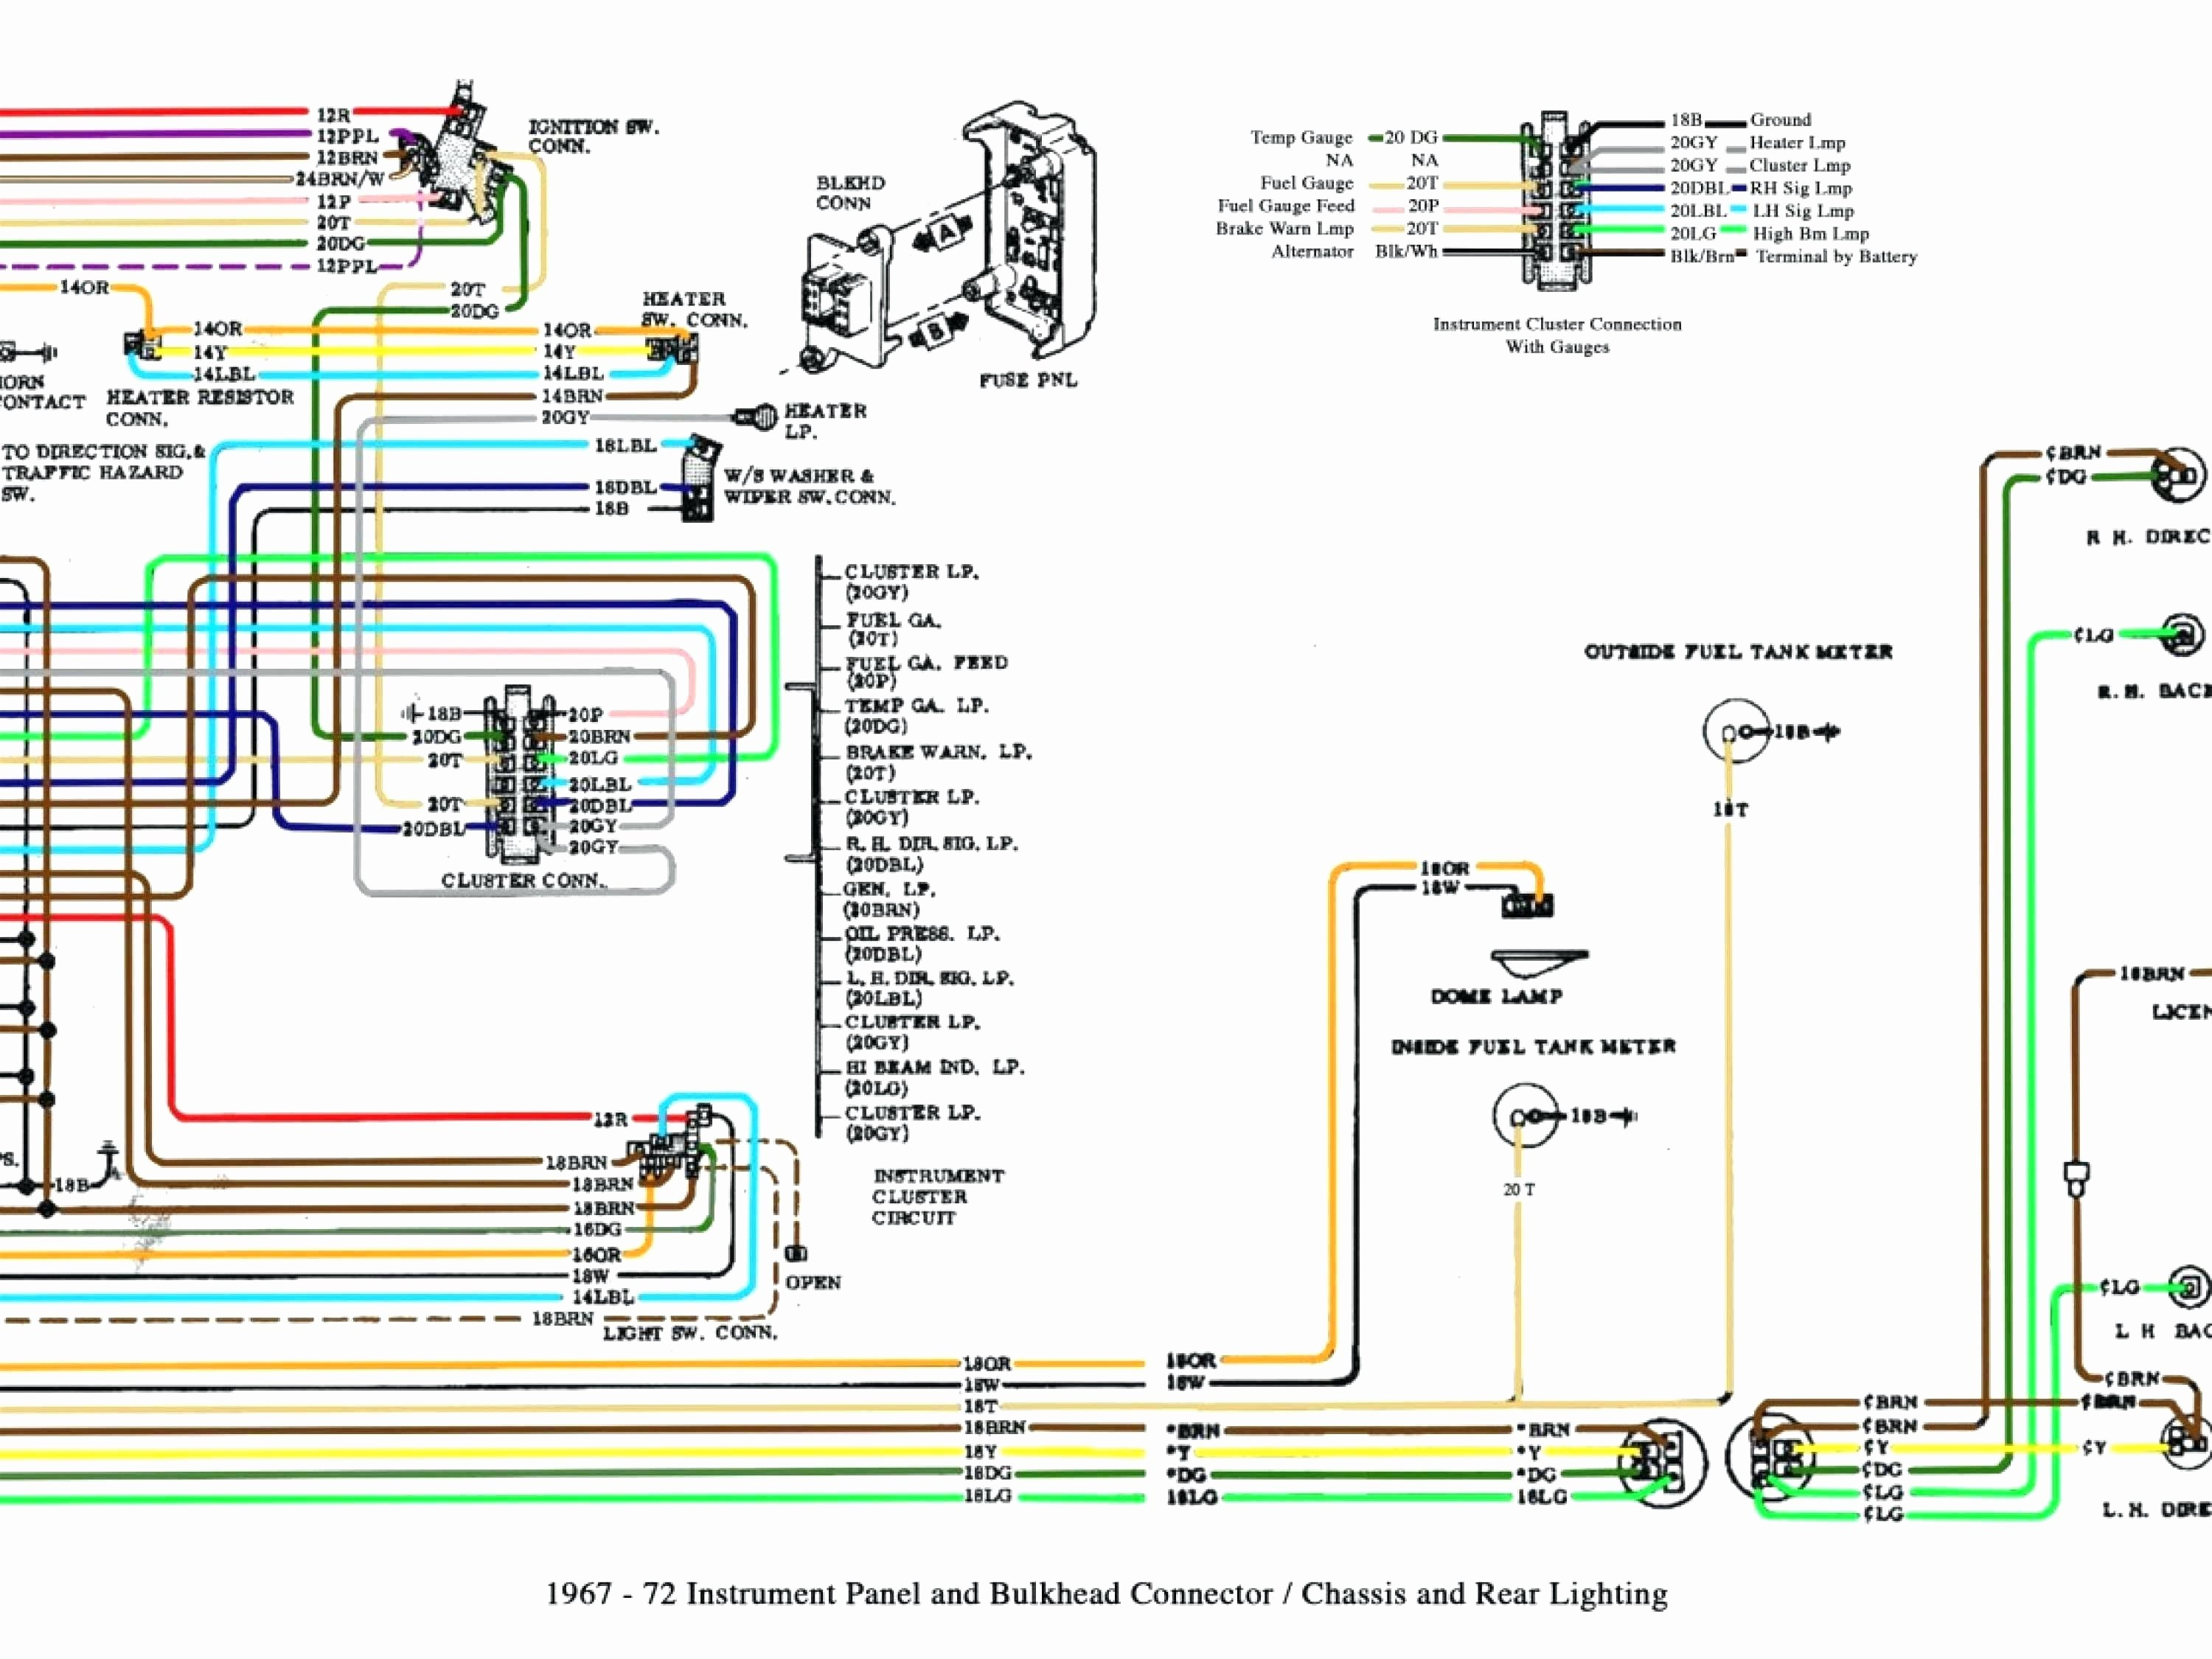 2006 Chevy Truck Wiring Dia - Wiring Diagram & Cable Management on